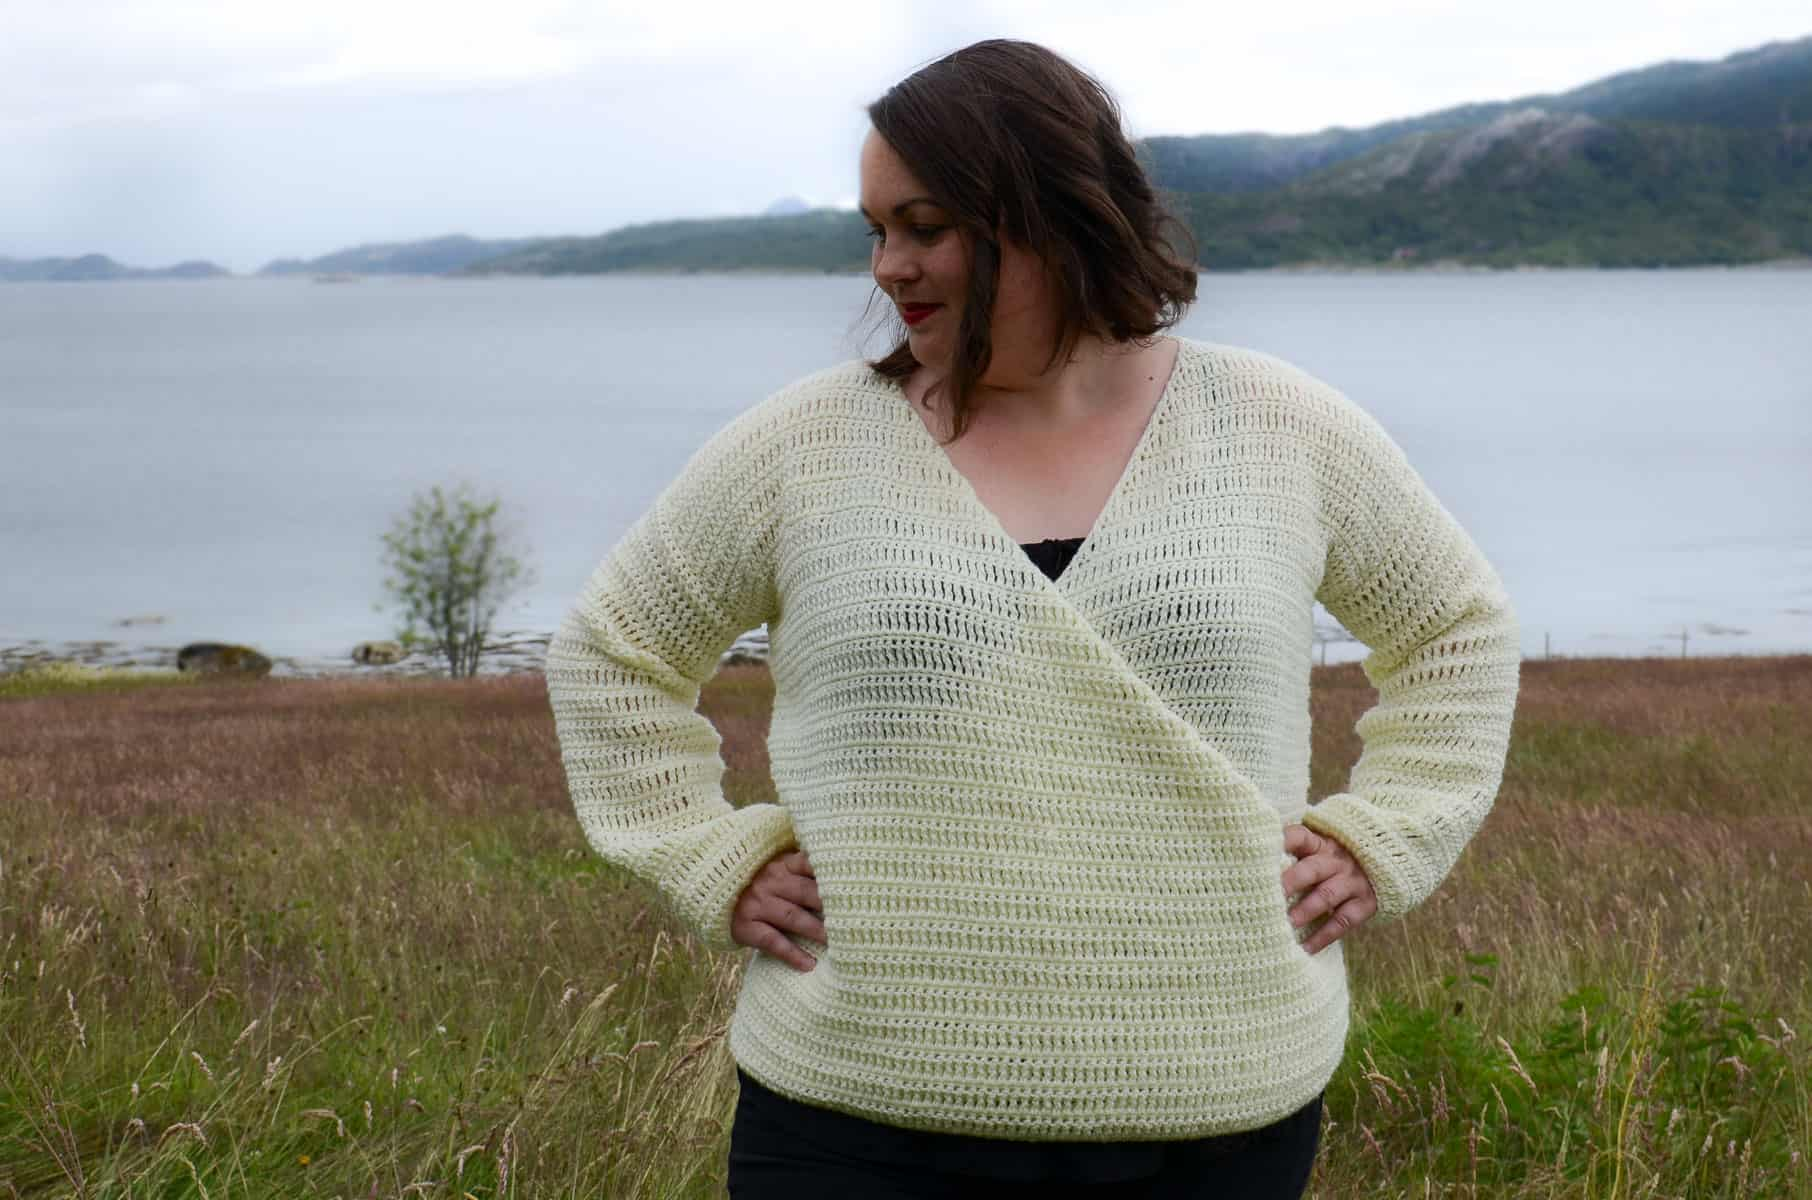 How to Choose Size When Crocheting a Garment